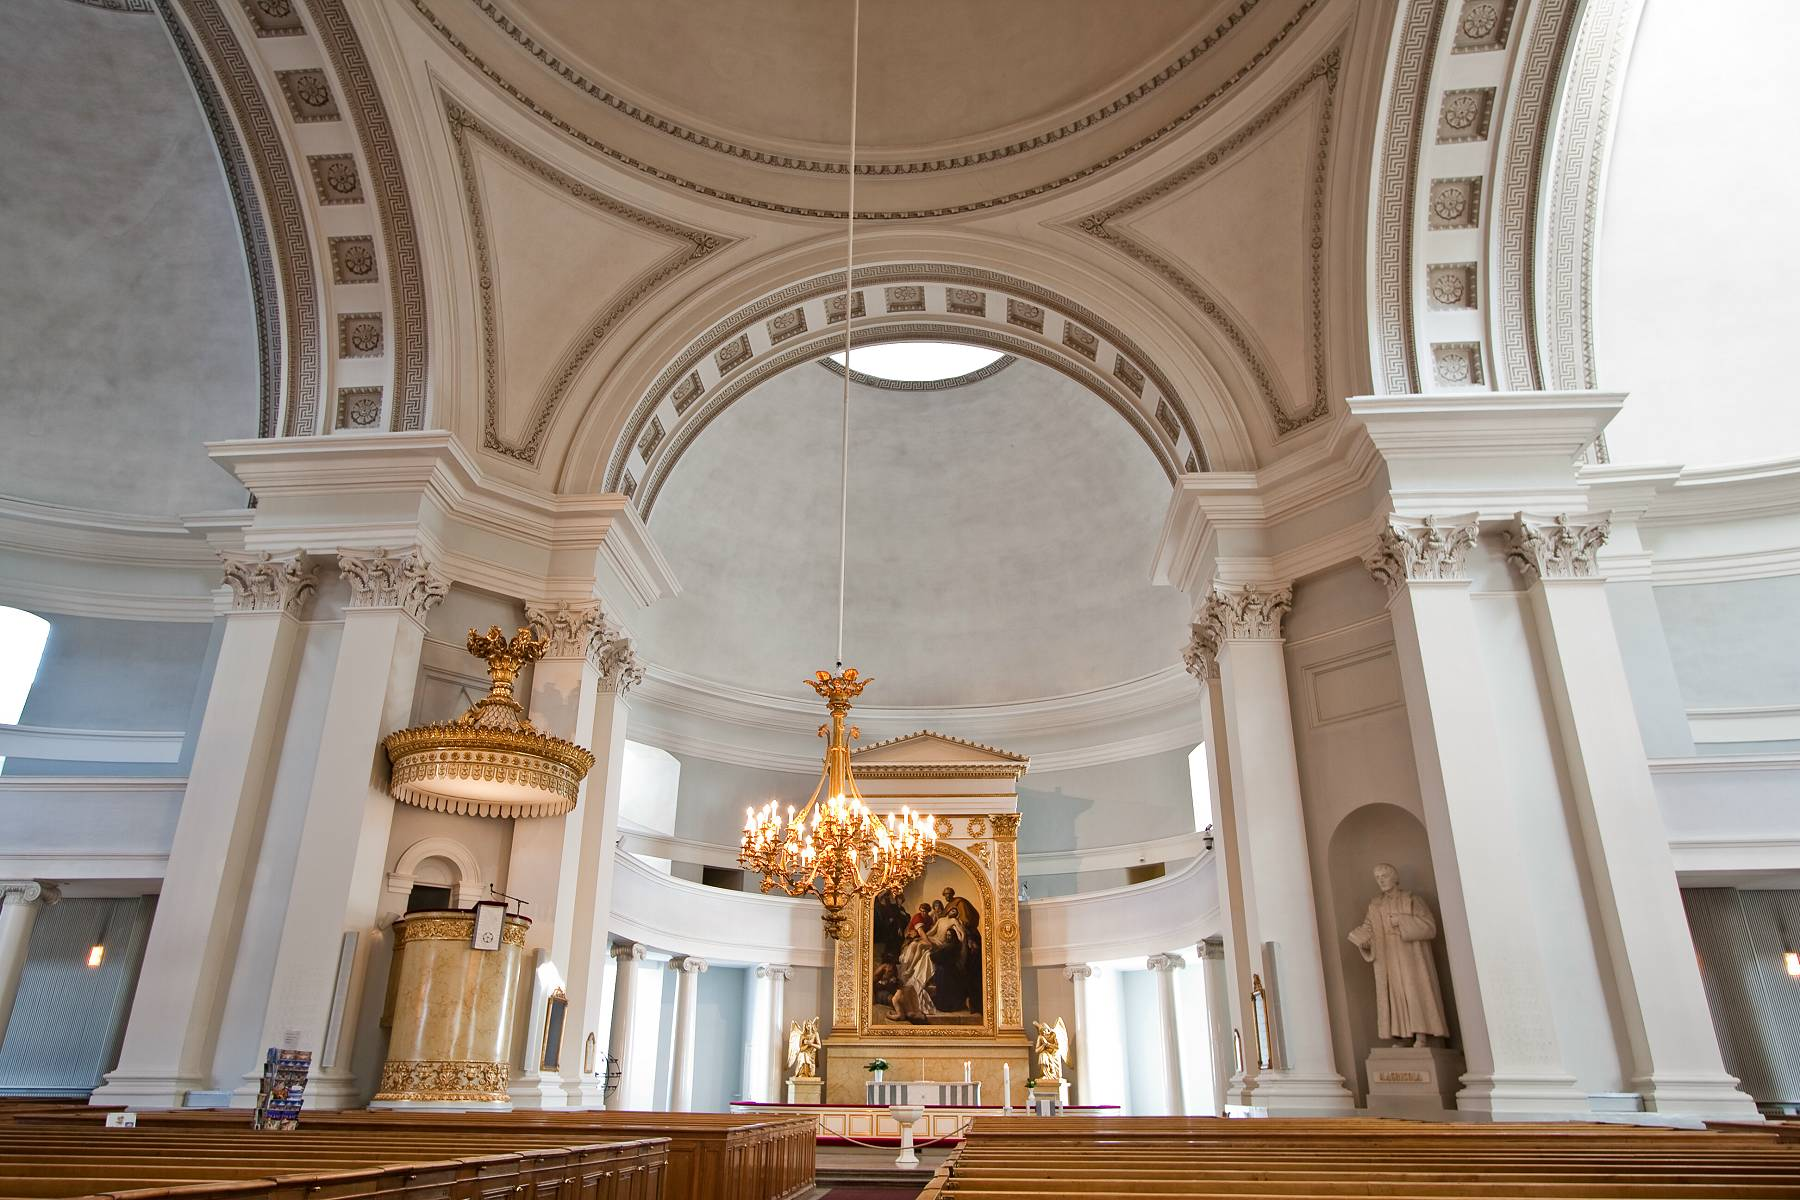 Helsinki cathedral interior images for Inside interieur